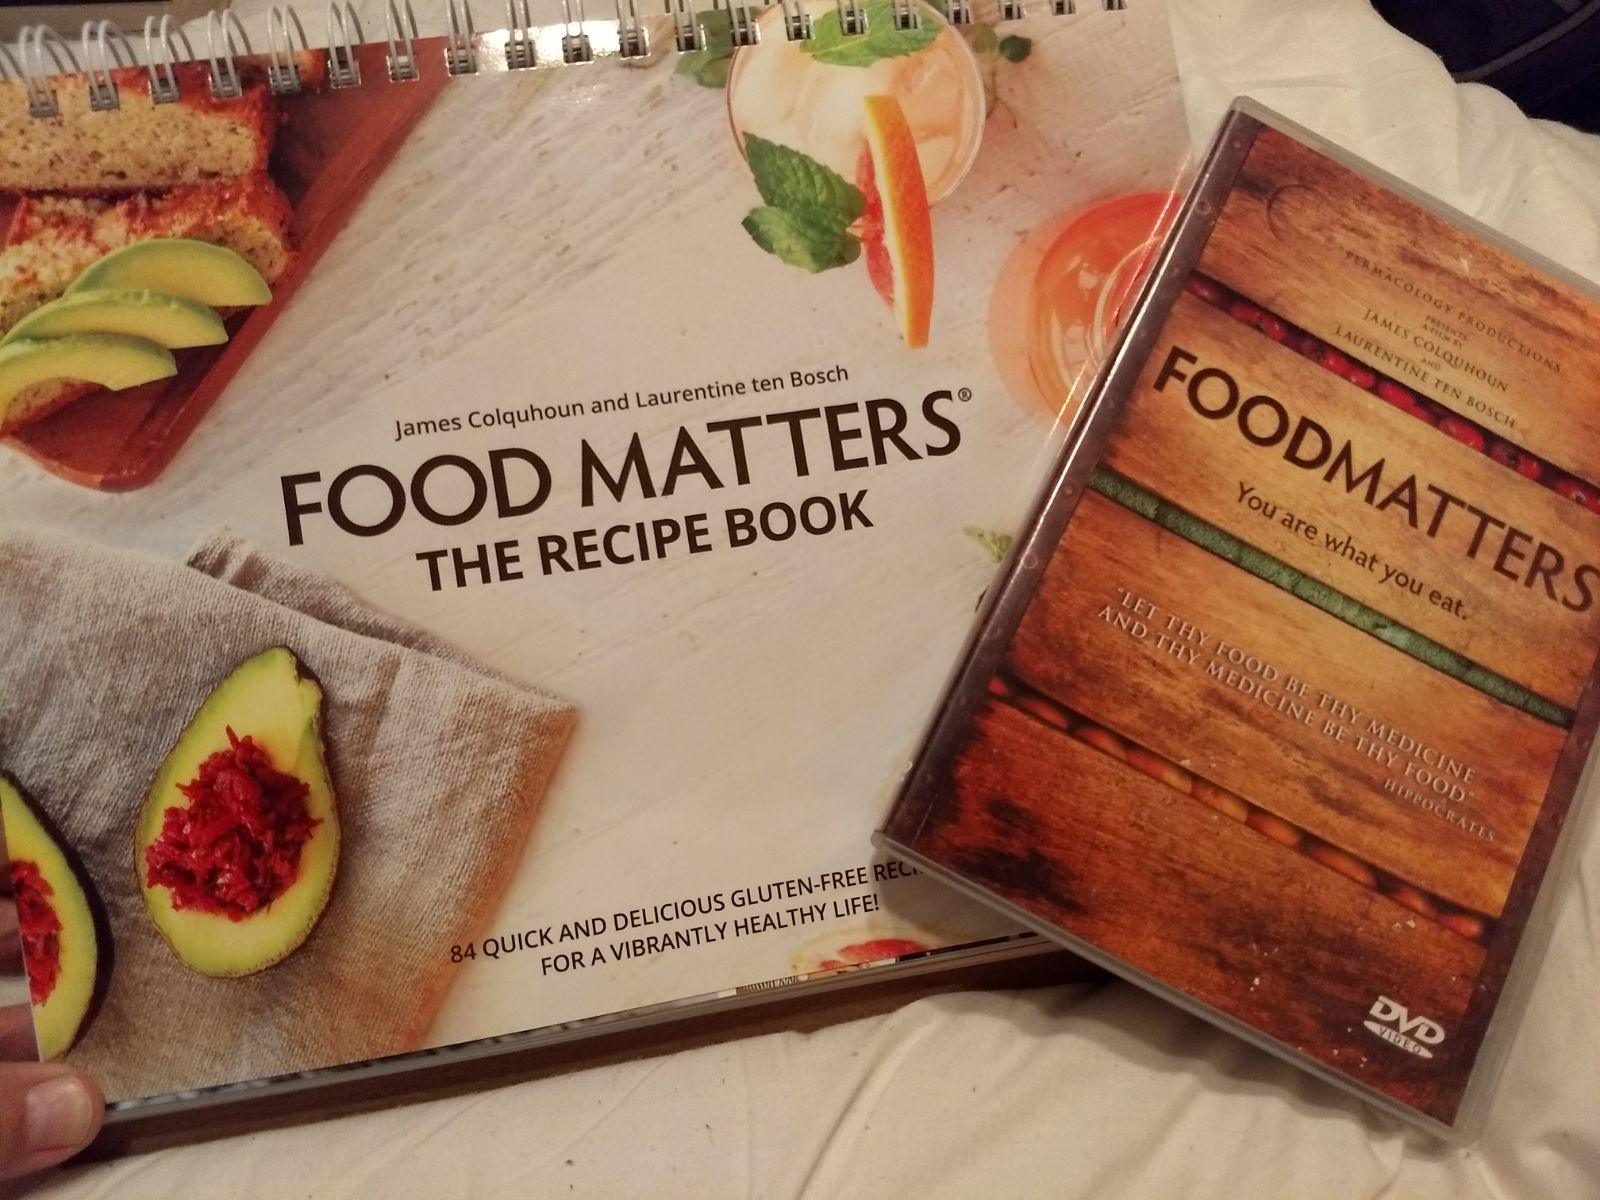 Foodmatters dvd and recipe book mercari buy sell things you love foodmatters dvd and recipe book forumfinder Image collections